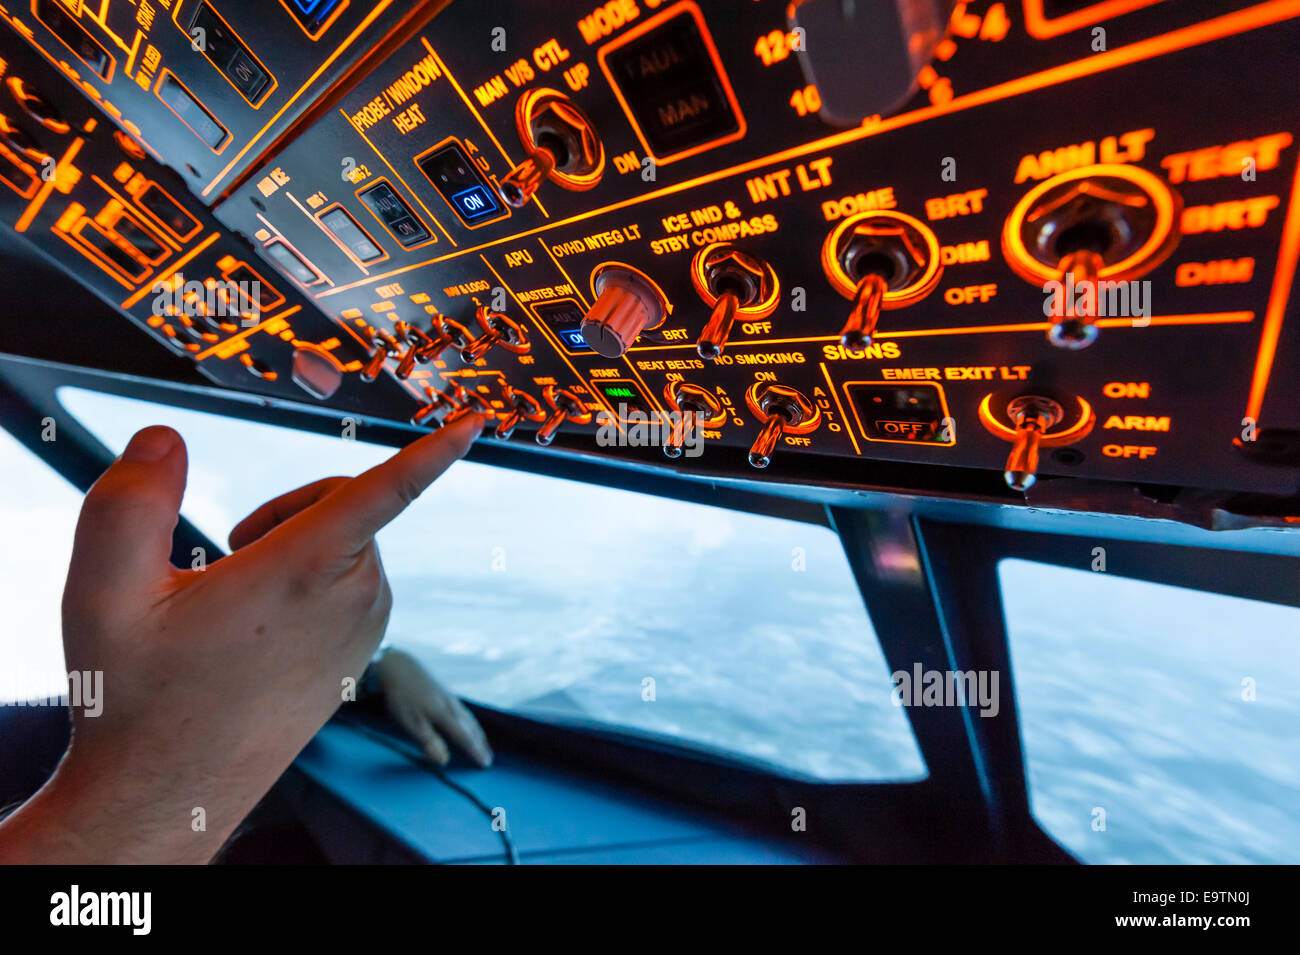 Cockpit of an Airbus A320 flight simulator that is used for training of professional airline pilots (during 'flight') - Stock Image